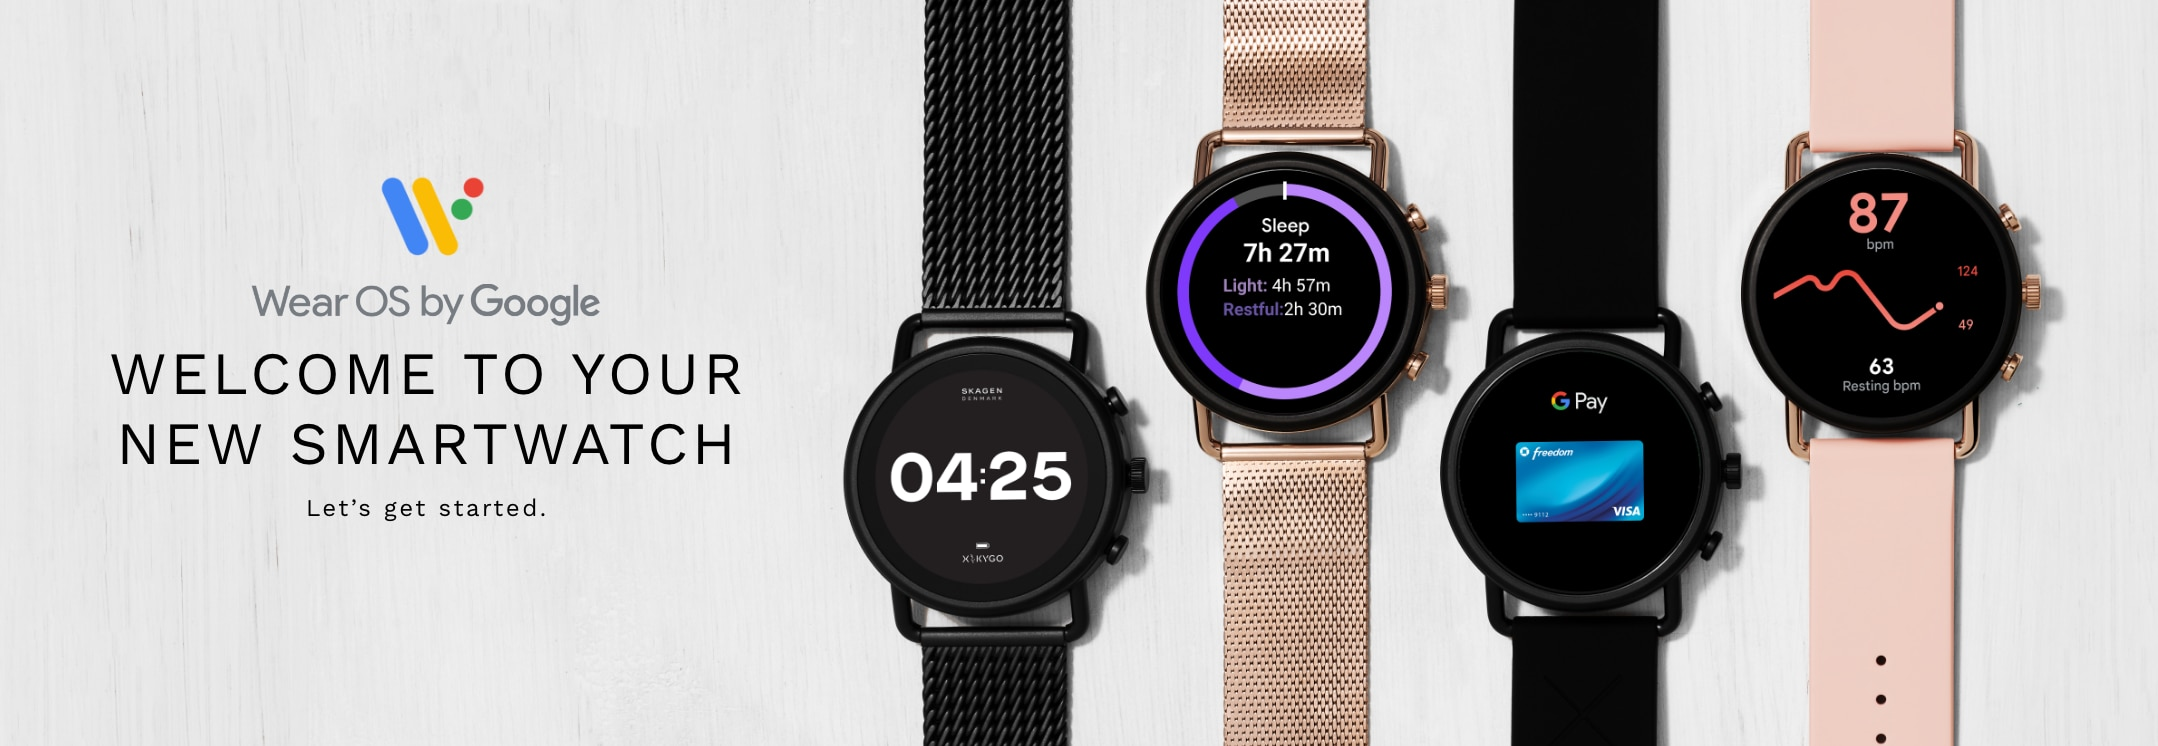 Learn how to set up your new smartwatch. Welcome to your new smartwatch. Let's get started.